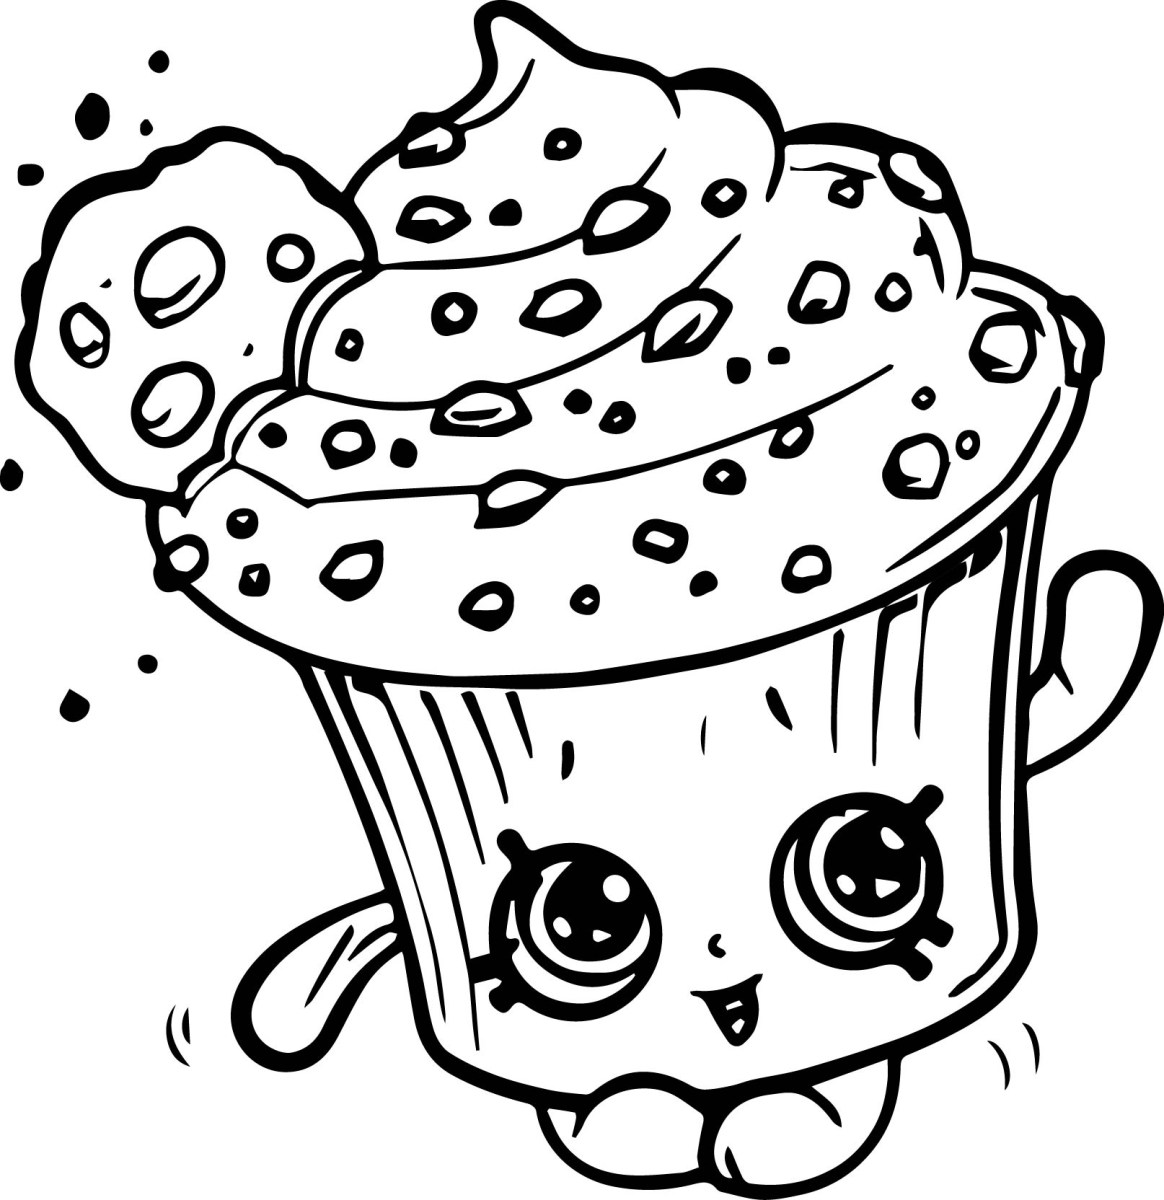 Shopkins Coloring Pages To Print Creamy Cookie Cupcake ...